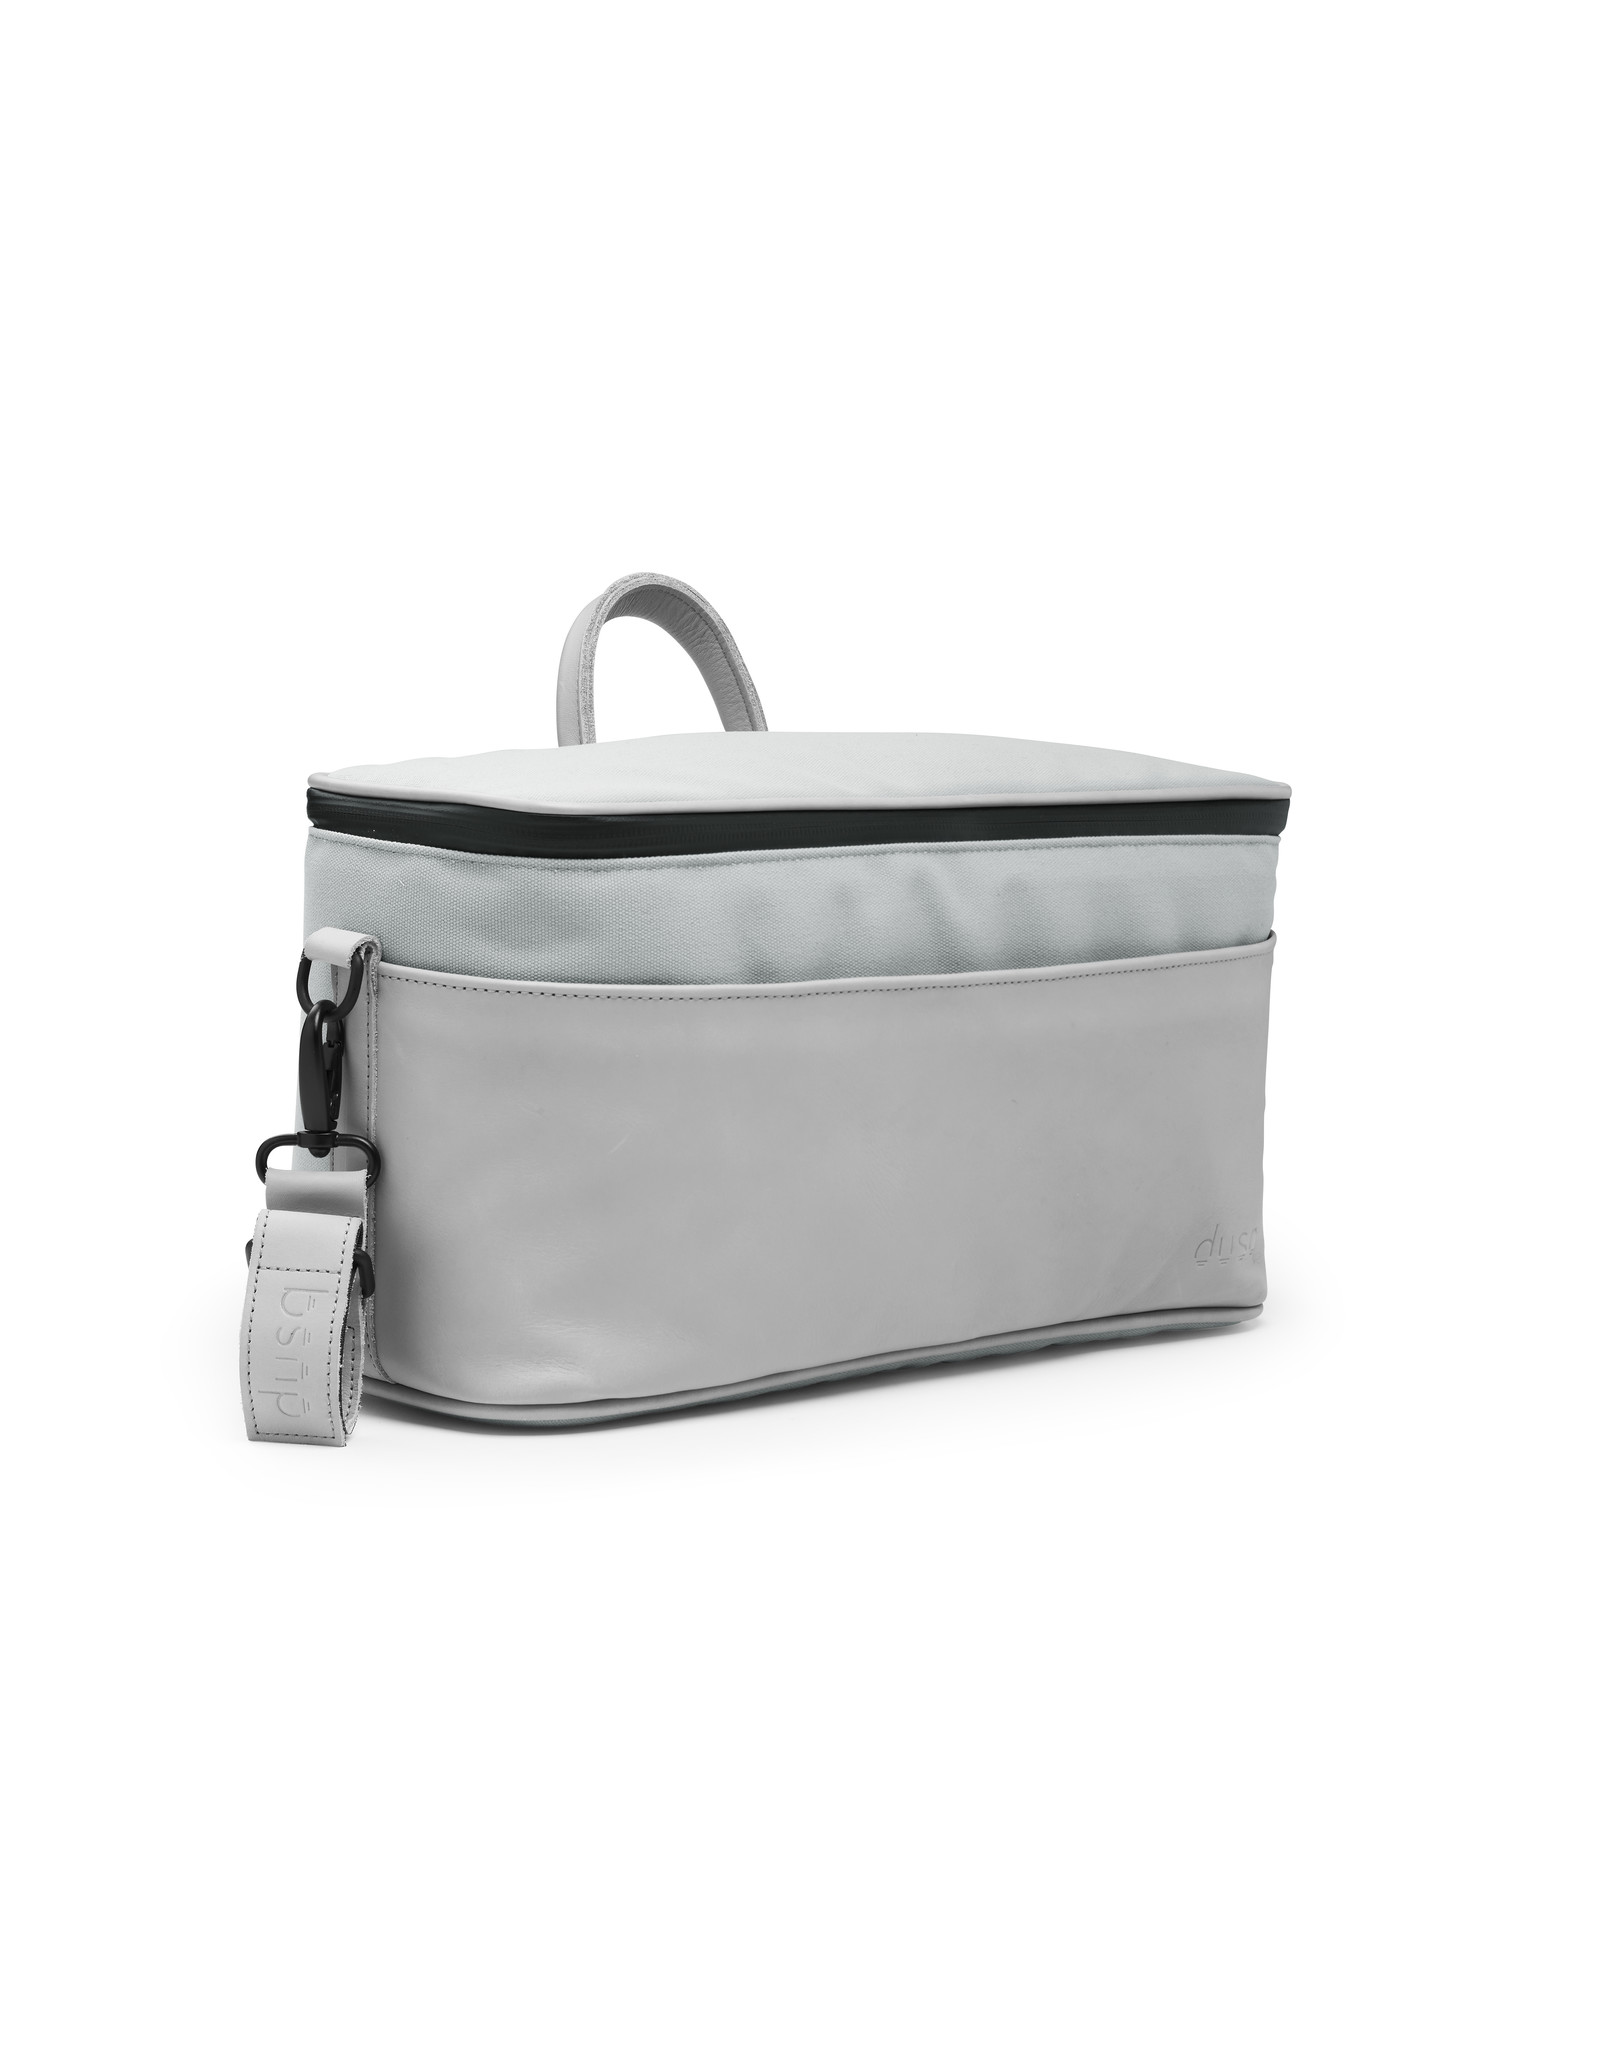 Dusq Dusq Organizer Tas Cloud Grey